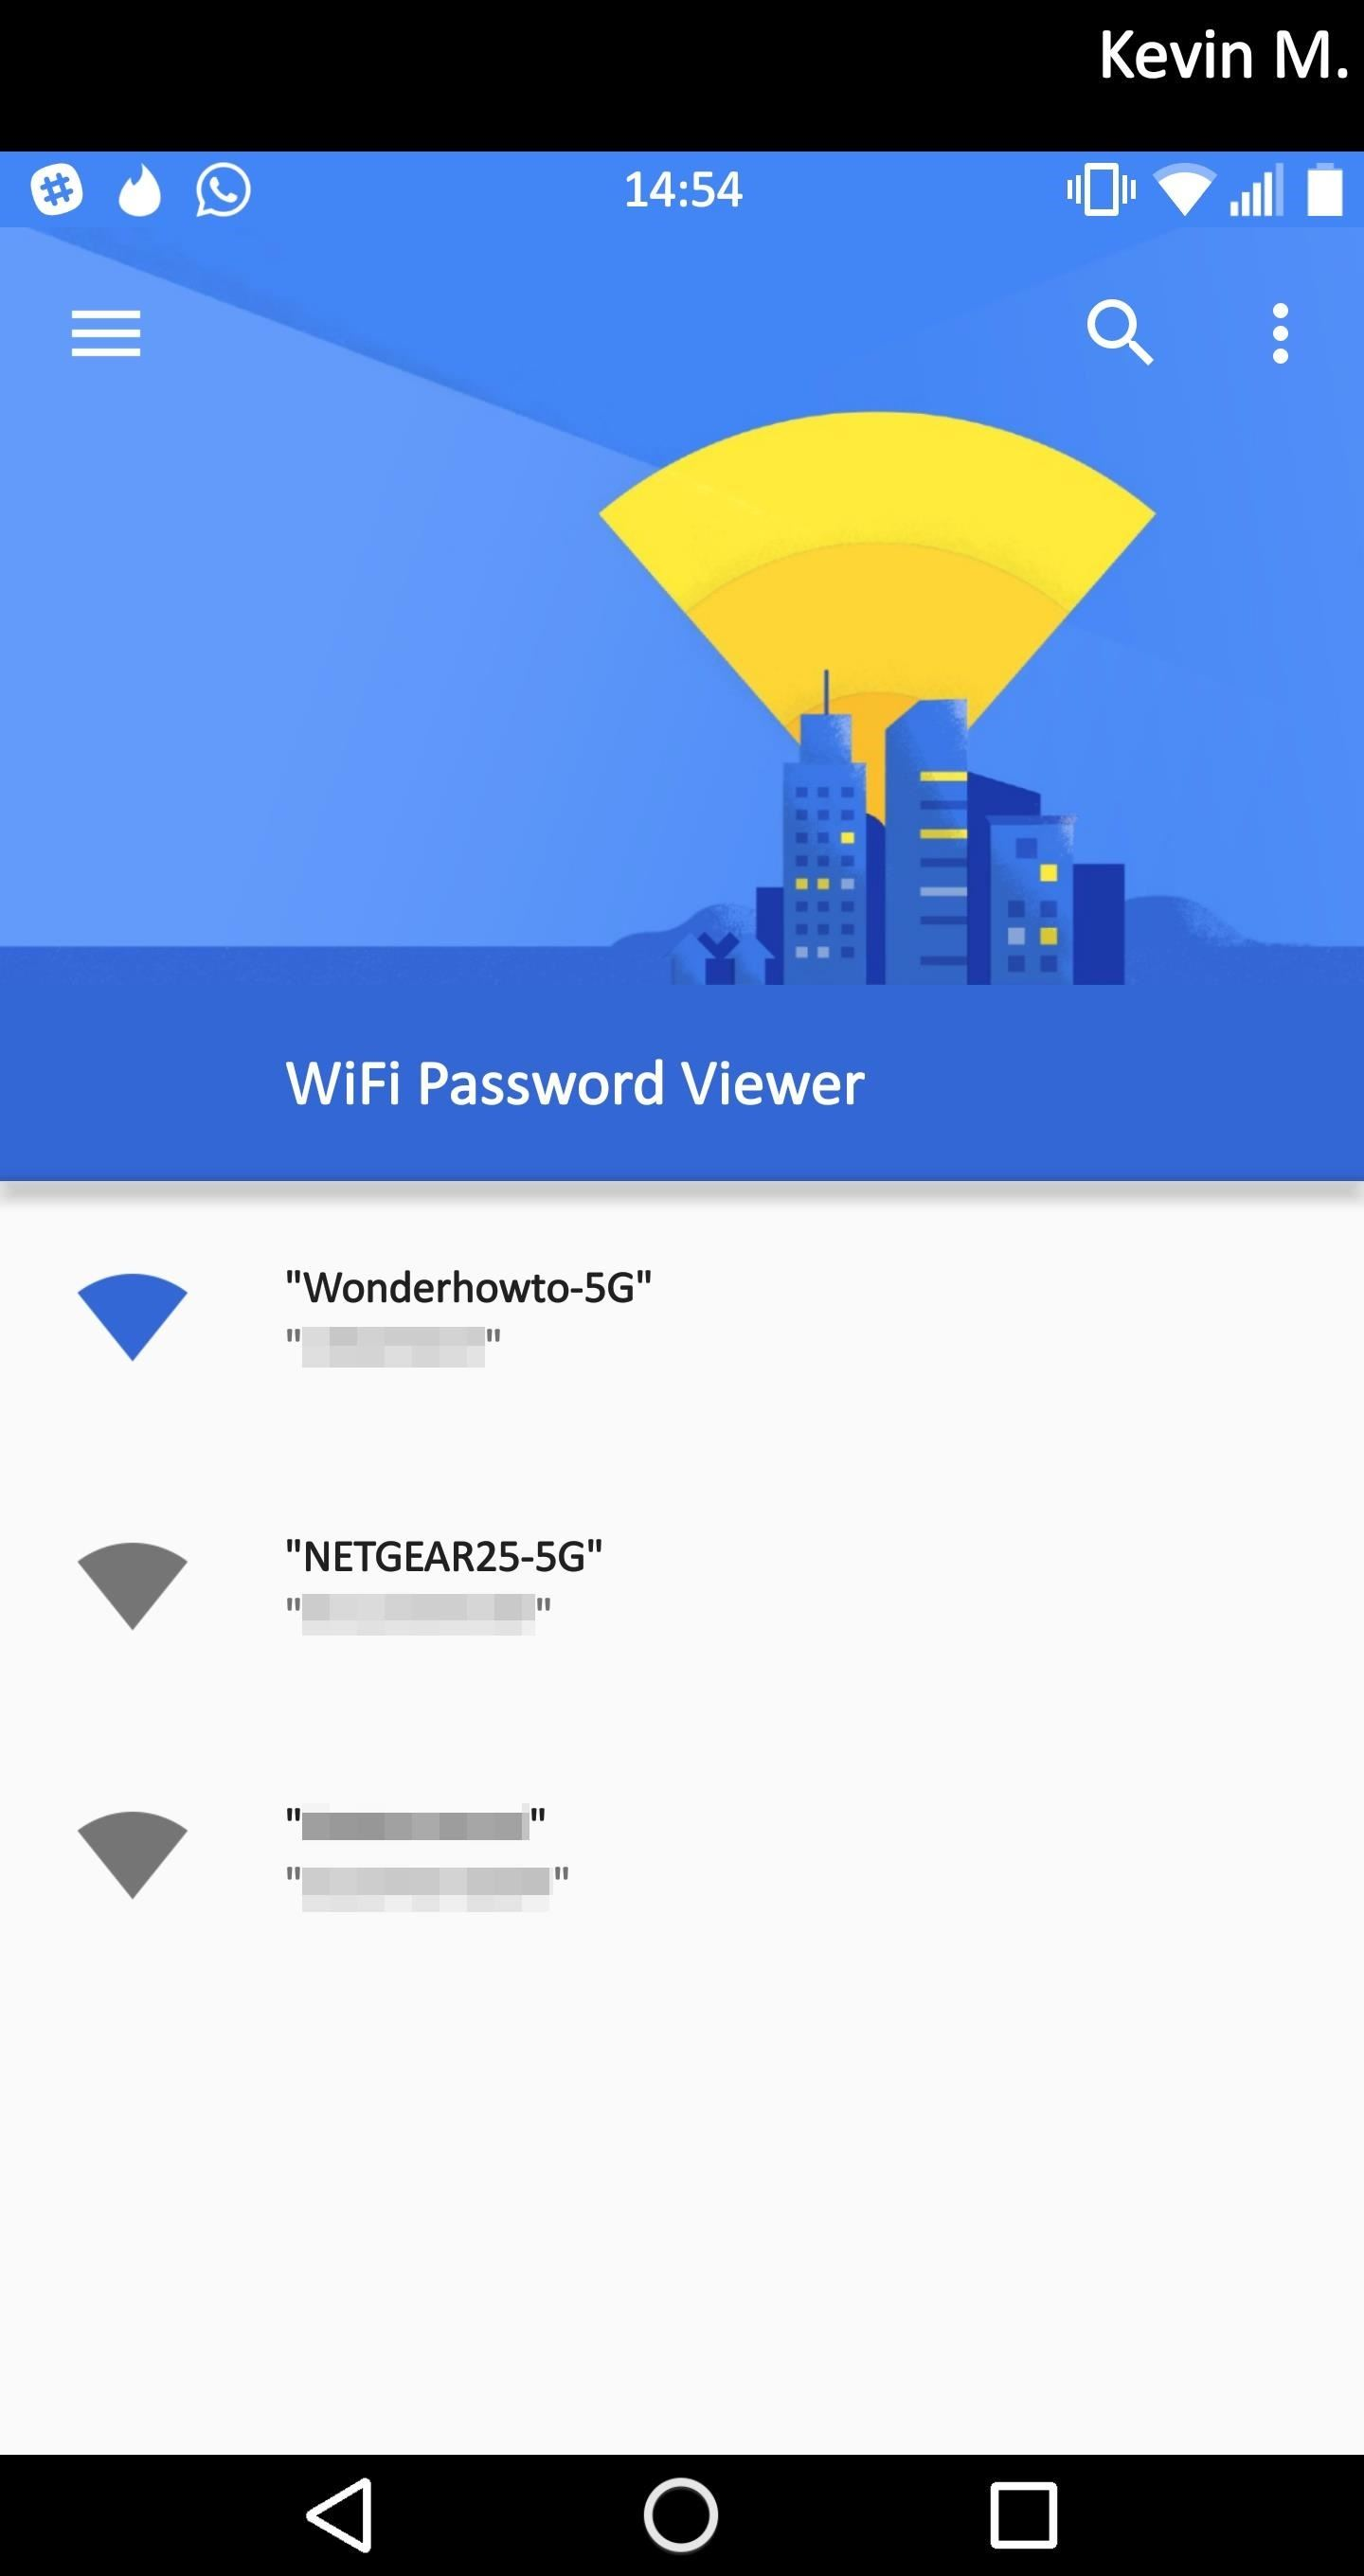 How to Easily See Passwords for Wi-Fi Networks You've Connected Your Android Device To